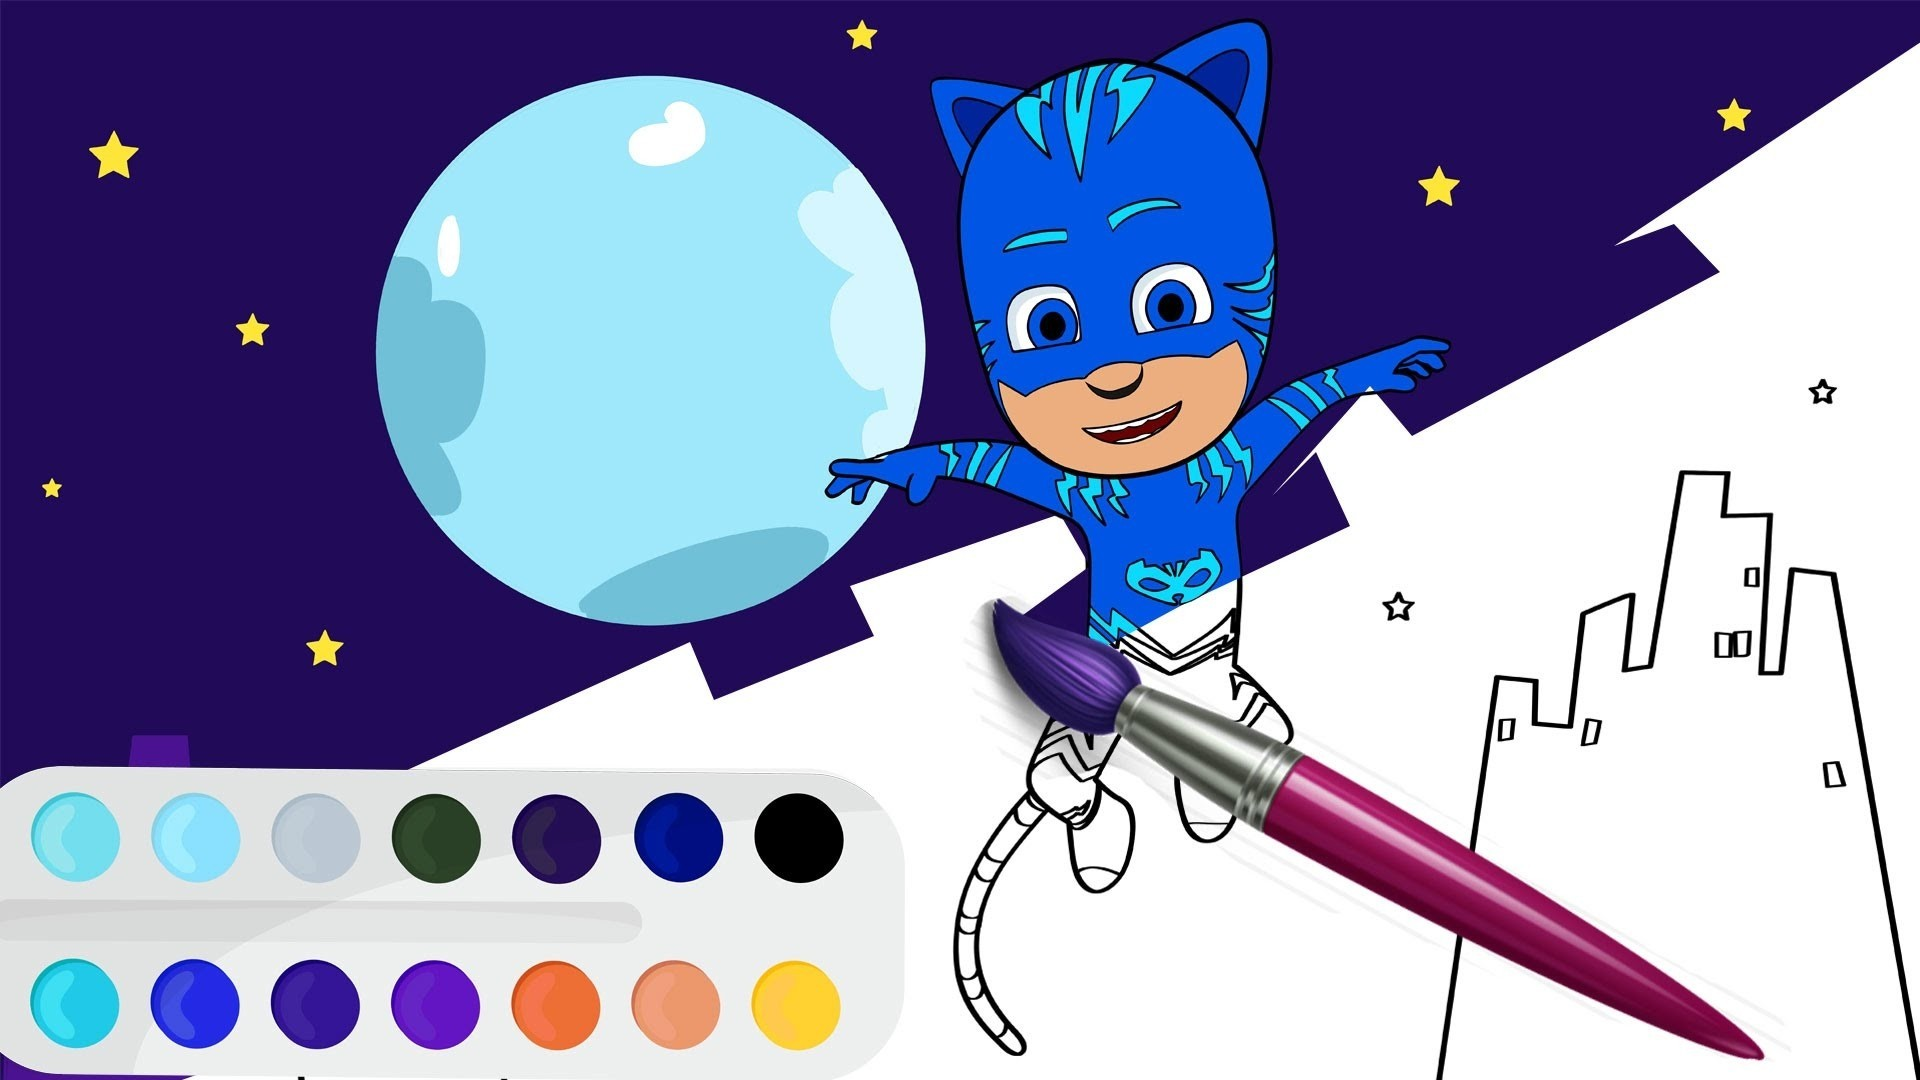 coloring-pages-for-pj-masks-best-of-catboy-coloring-page-collection-printable-coloring-pages-refrence-pj-masks-gecko-coloring-pages-best-pj-masks-coloring-pages-of-coloring-pages-for-pj-masks-best-of